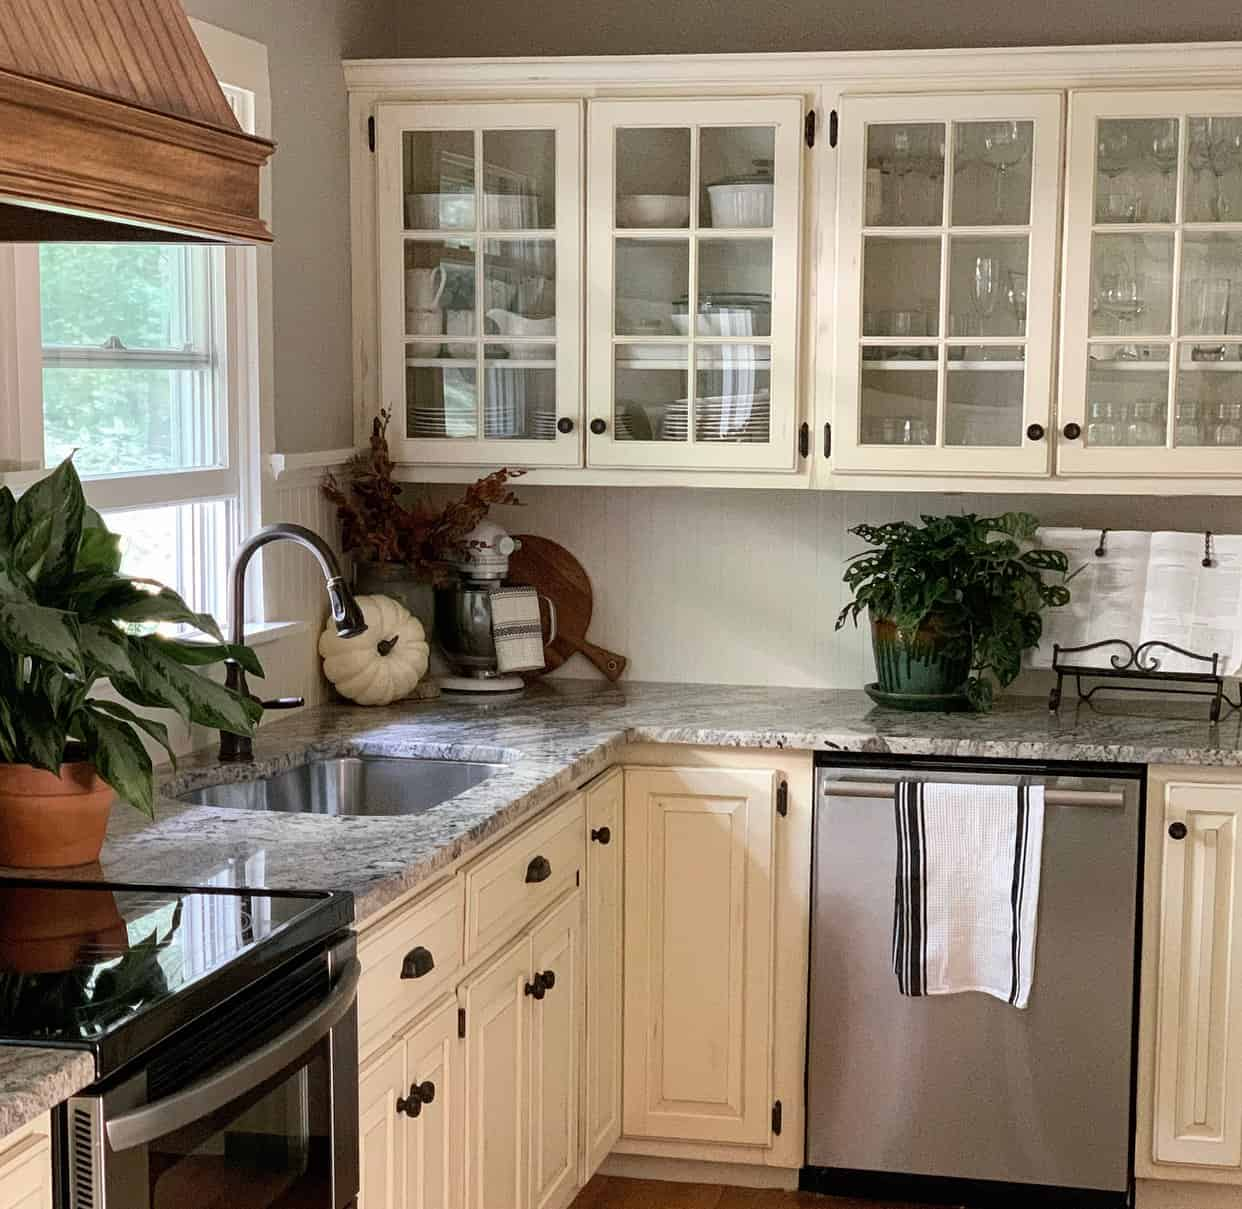 Chalk Paint Kitchen Cabinets FAQ - Stacy Ling